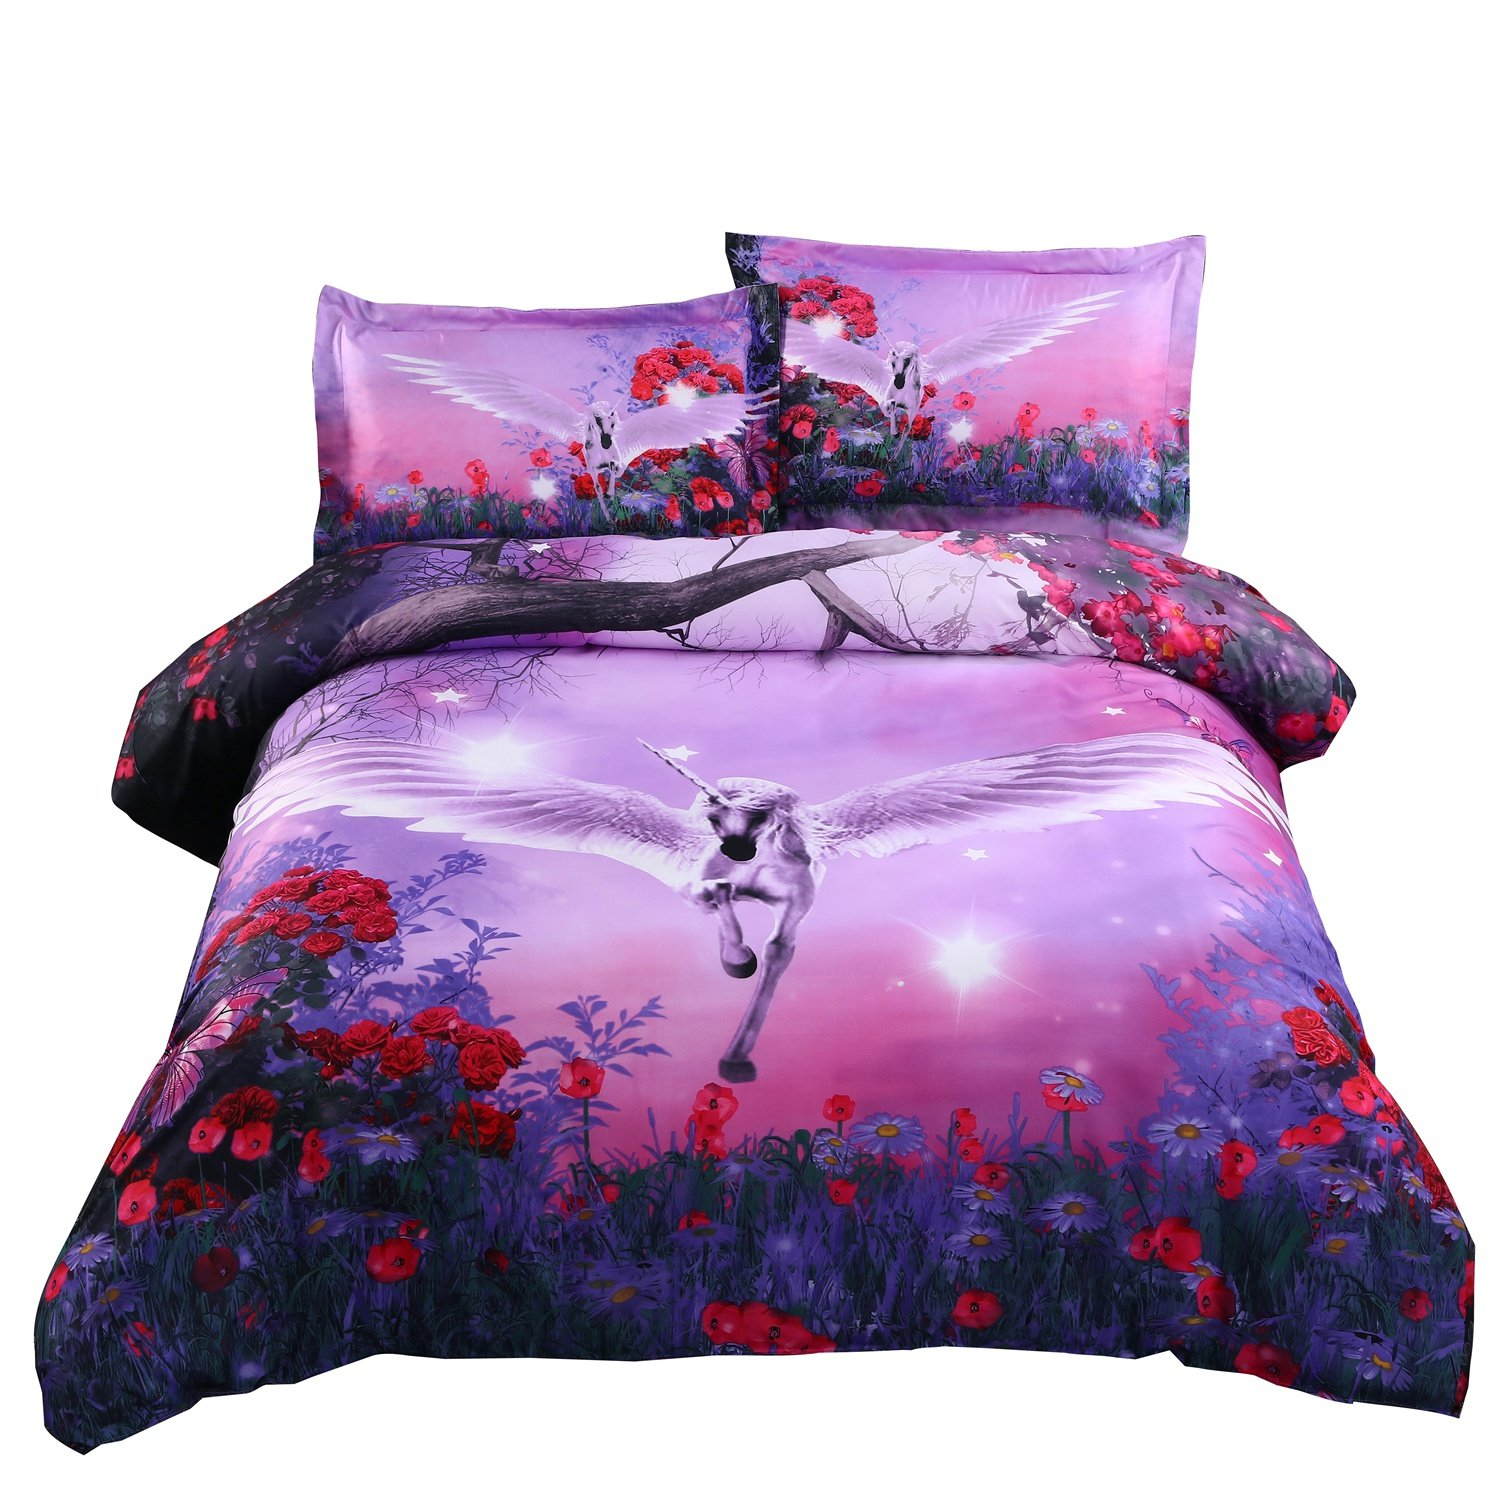 Alicemall 3D Unicorn Bedding Purple Bedding Set Dreamlike Flying Horse with Wings Purple Polyester 3D College Bedding Set, 4 Pieces, Duvet Cover, Bed Sheet and 2 Pillow Cases (Twin XL)